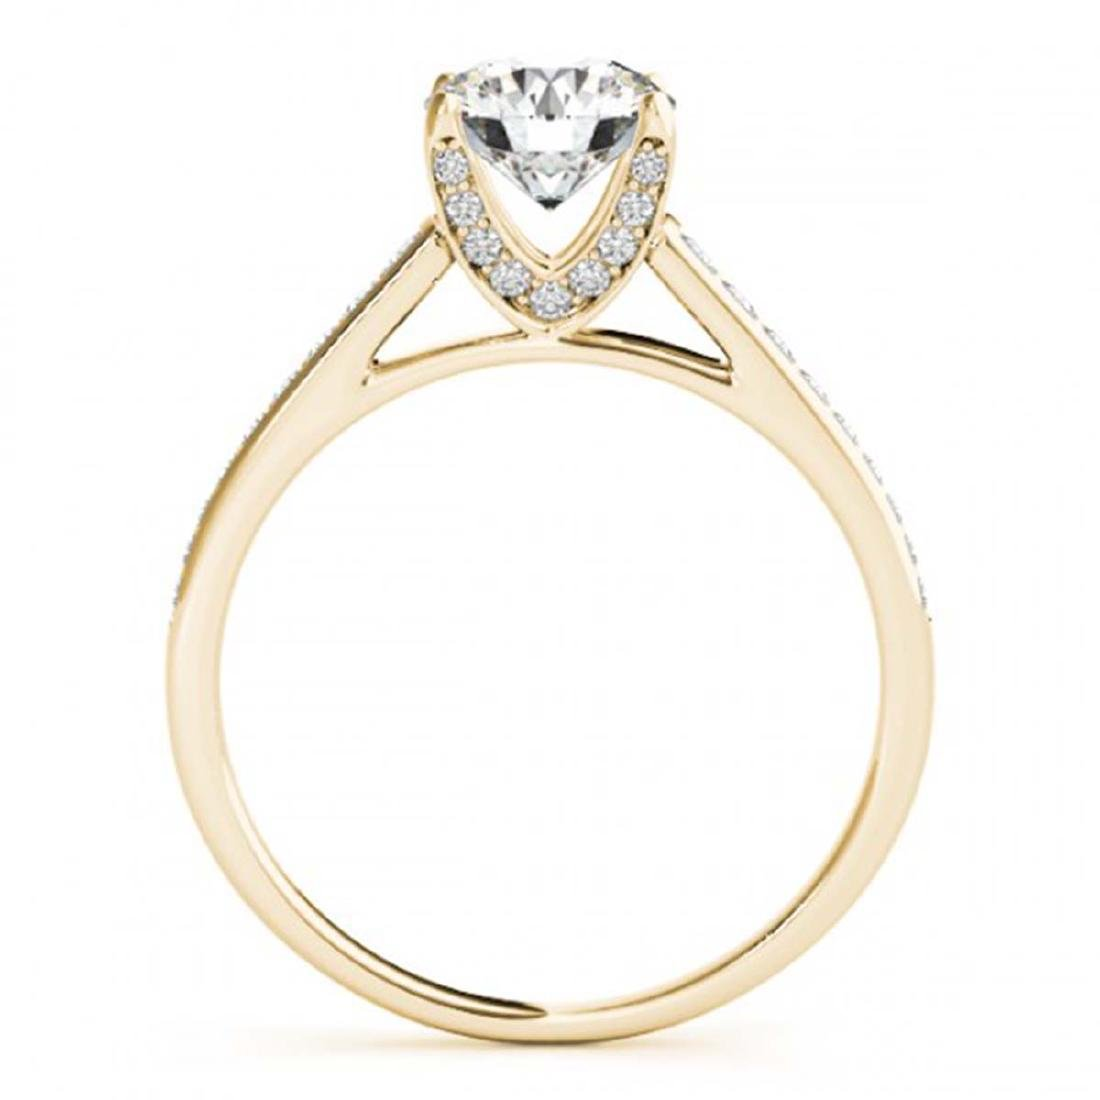 1.20 ctw VS/SI Diamond Solitaire Ring 14K Yellow Gold - - 2